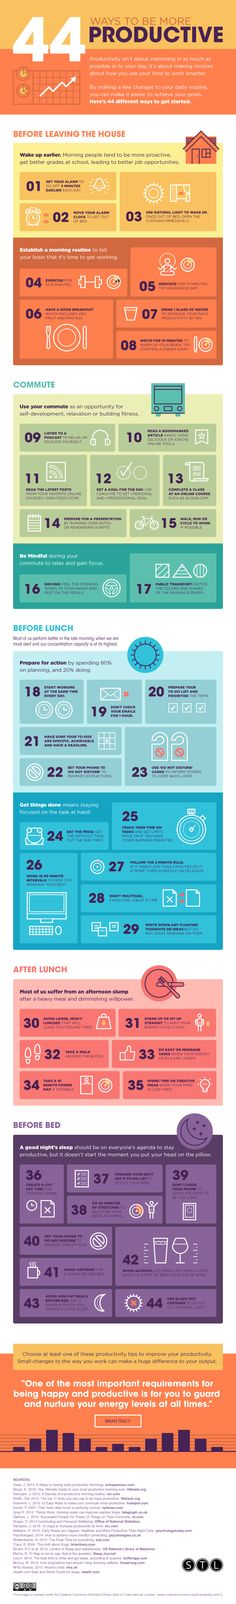 Infographic: 44 ways to be more productive - Matador Network